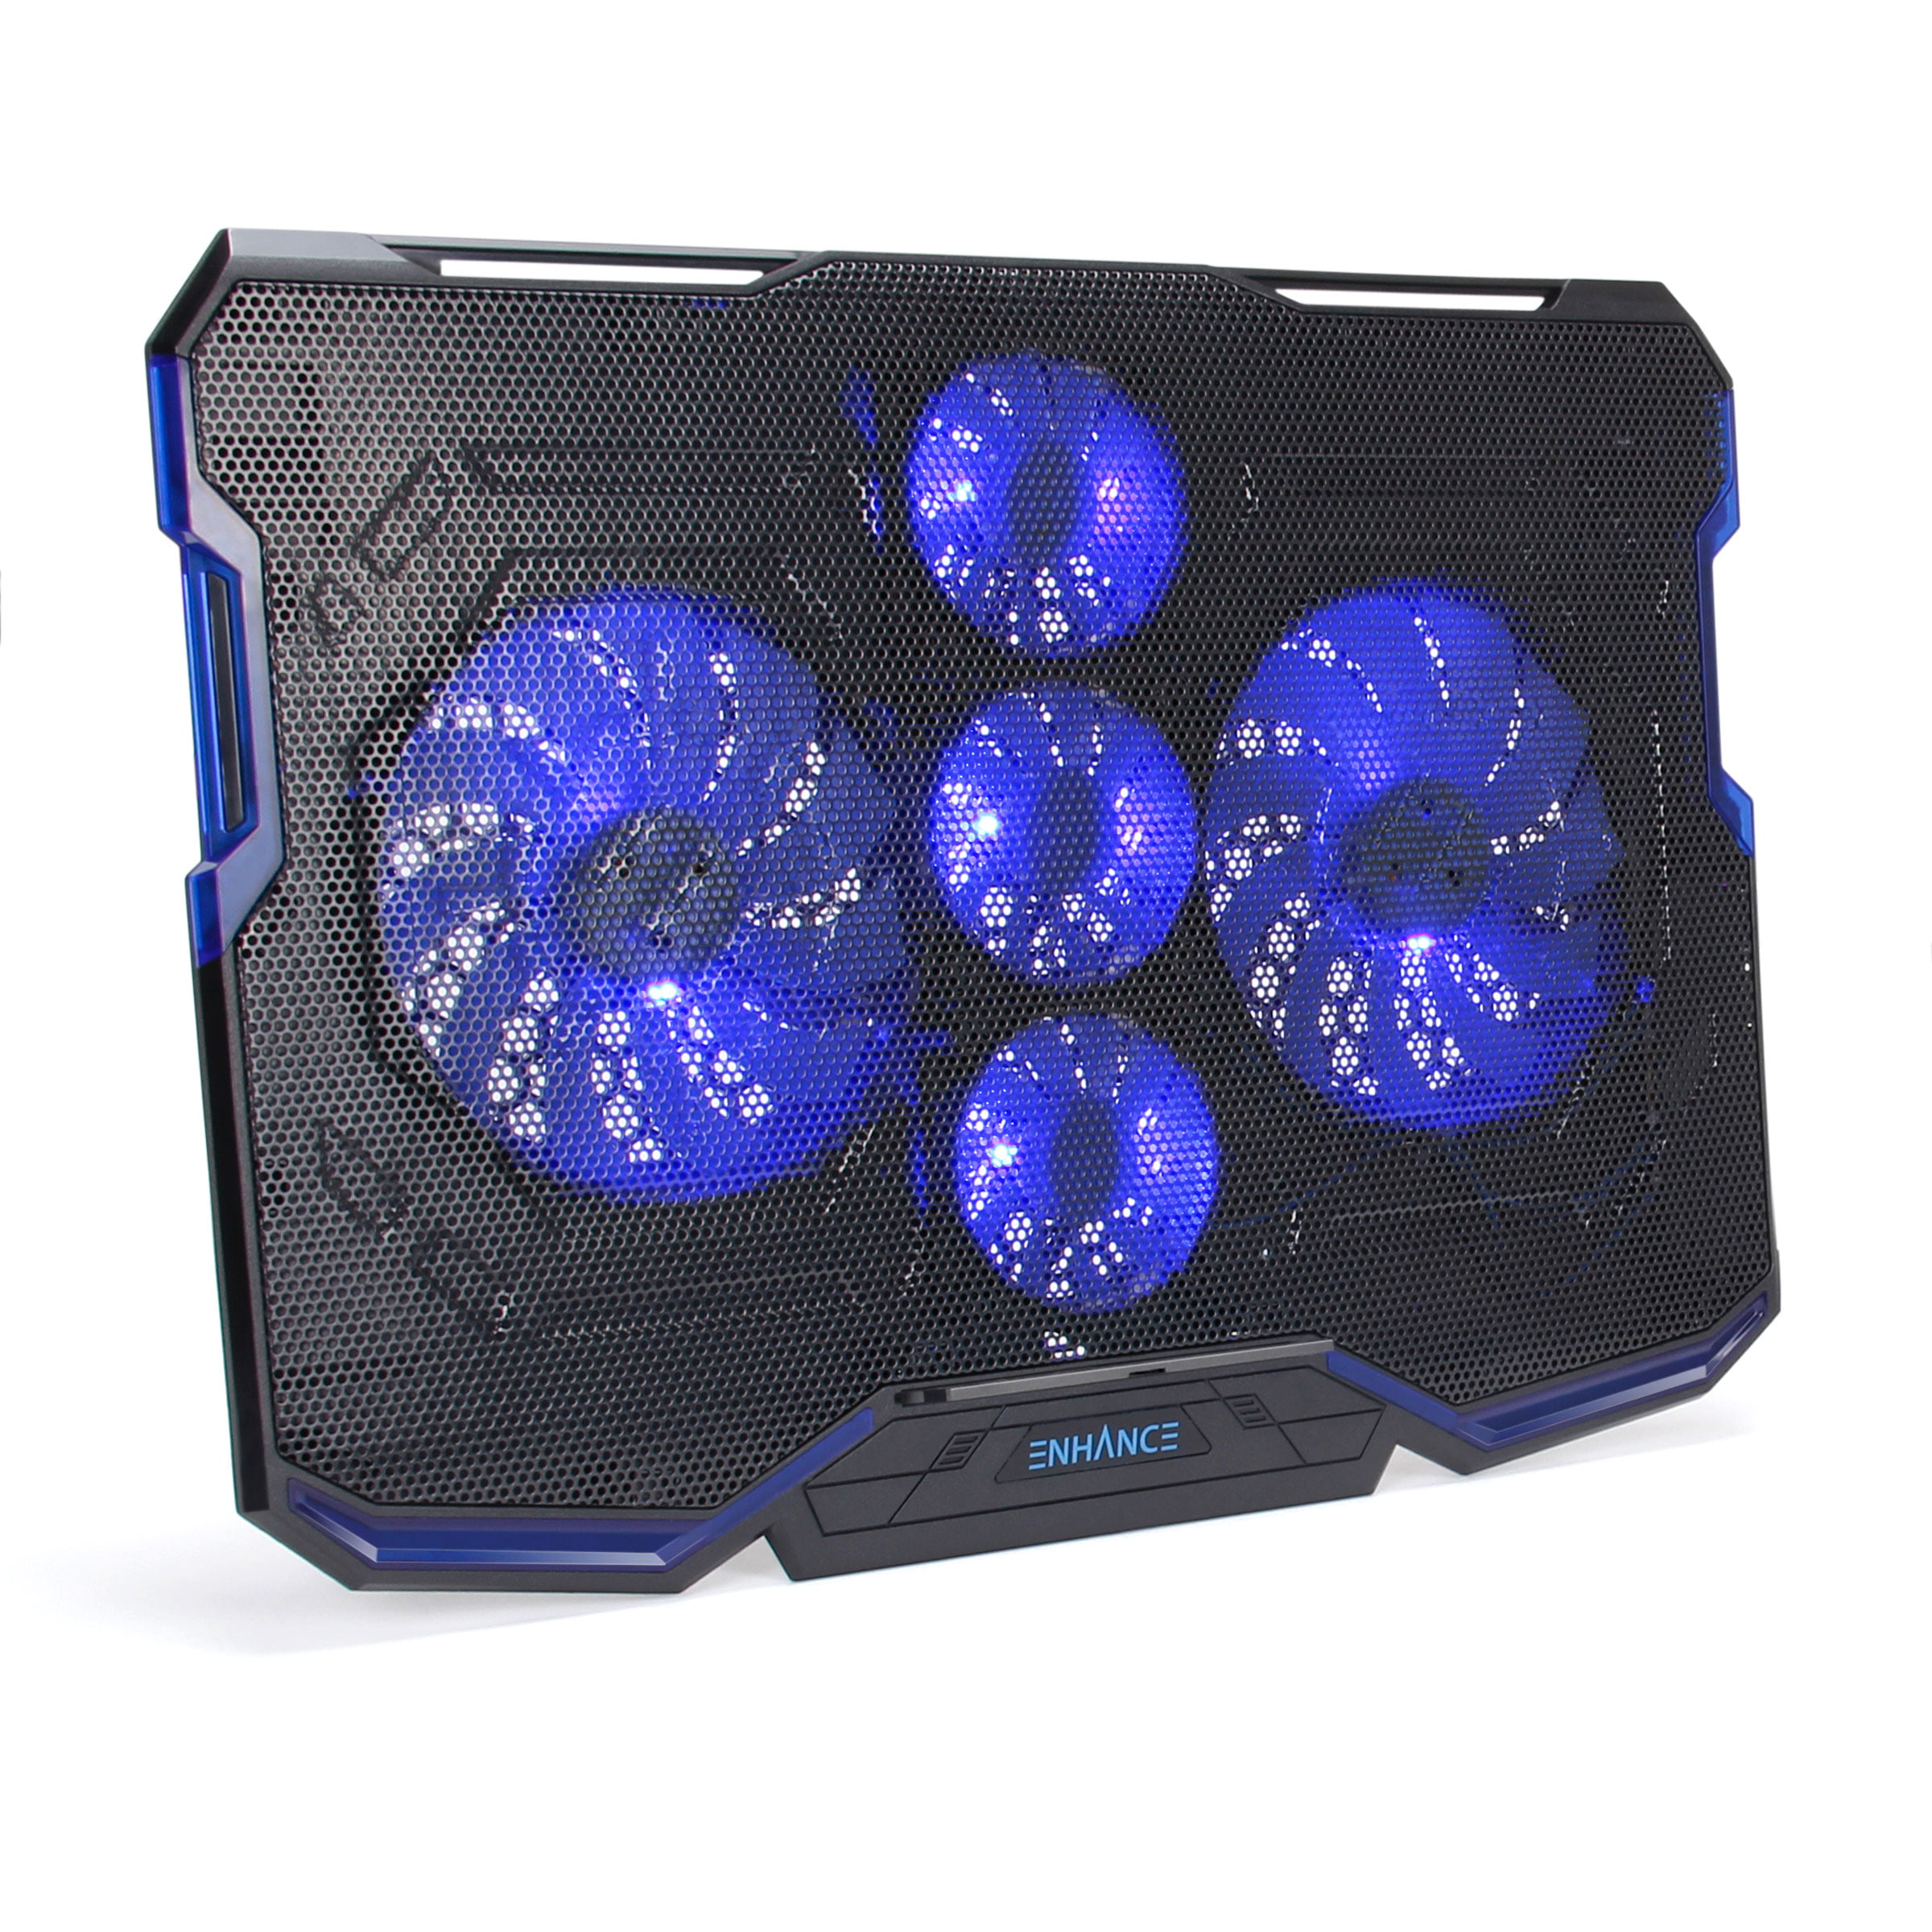 2 USB Ports and LED Lighting Slim Portable Design 2500 RPM ENHANCE Cryogen Gaming Laptop Cooling Pad Adjustable Laptop Cooling Stand with 5 Ultra Quiet Cooler Fans Fits up to 17 inch Computer